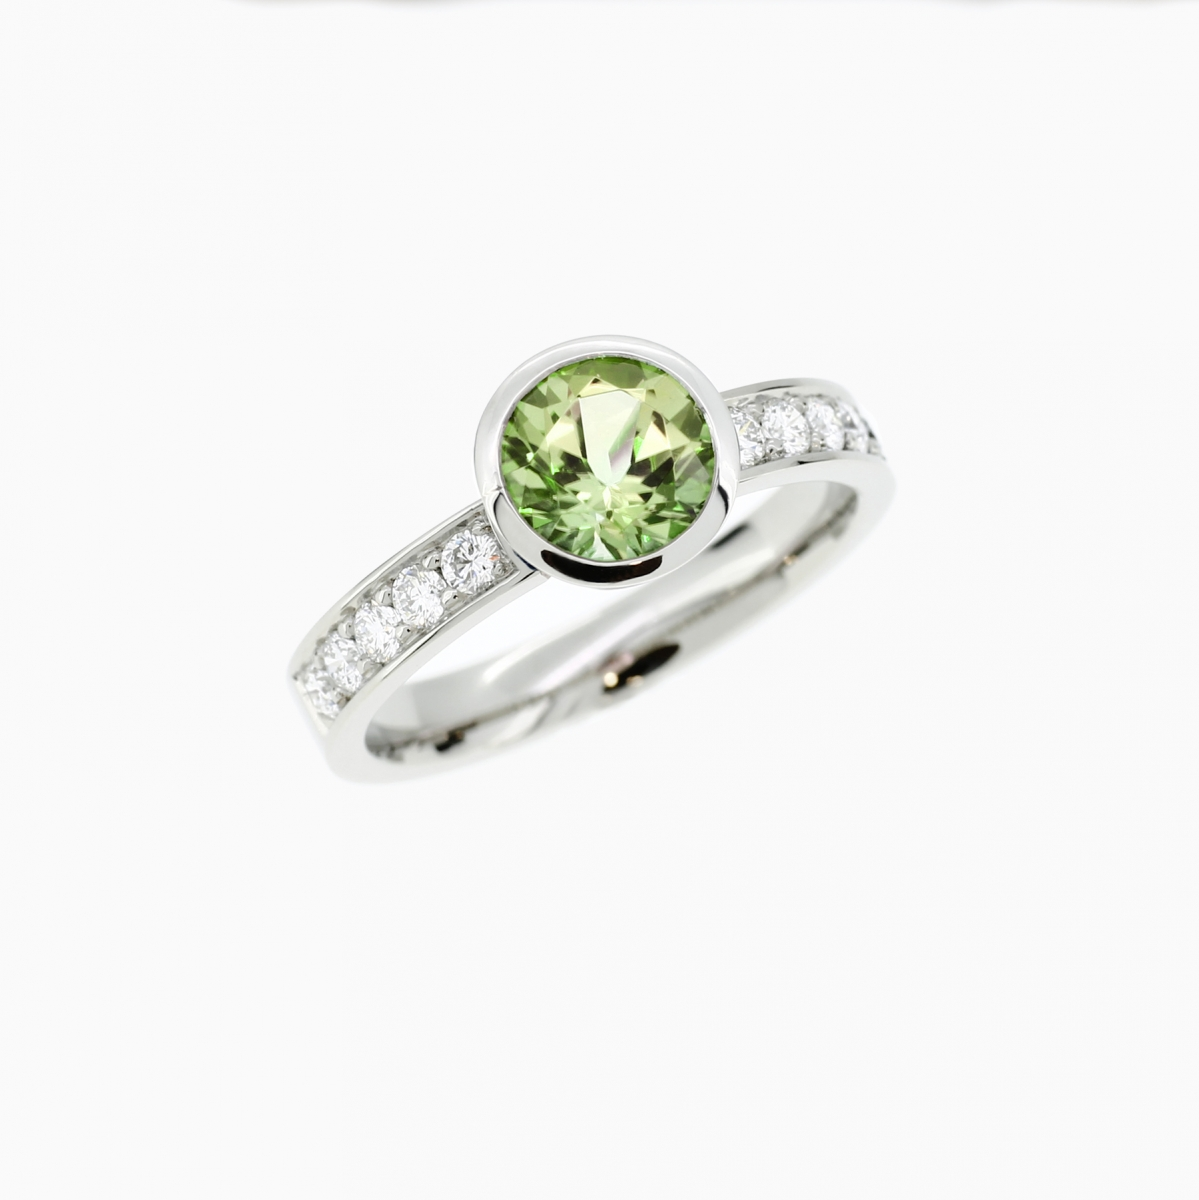 birthstone rare princess band cut stone august anniversary products stacking wedding peridot ring rings